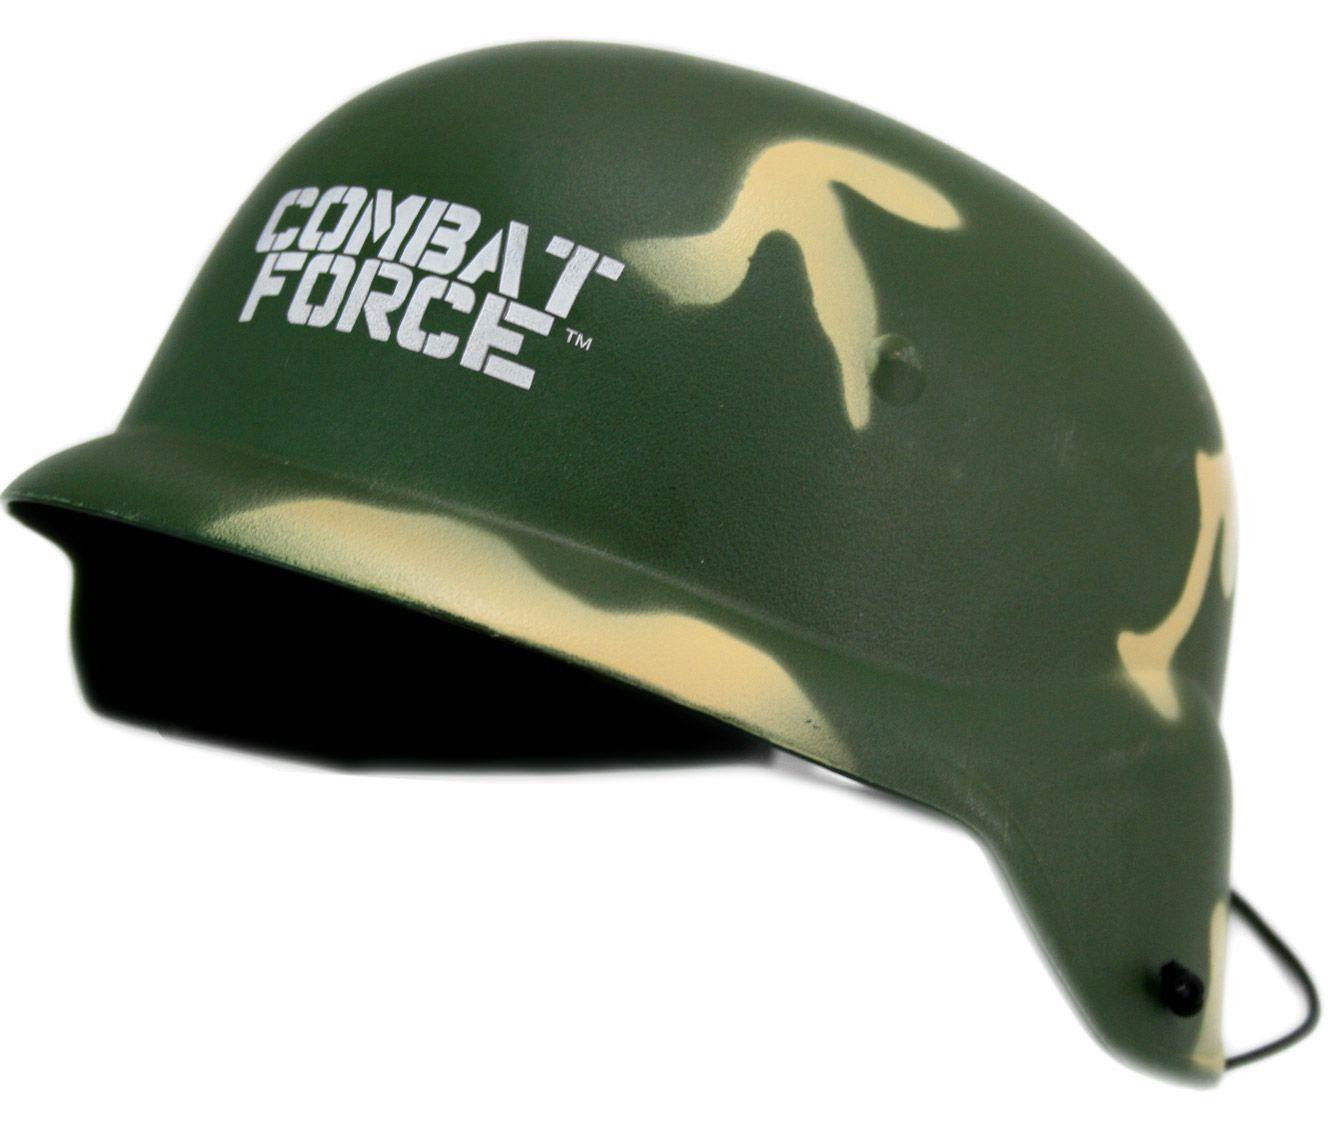 COMBAT FORCE CAMOUFLAGE ARMY KIDS CHILDRENS PLAY TOY HELMET hard plastic